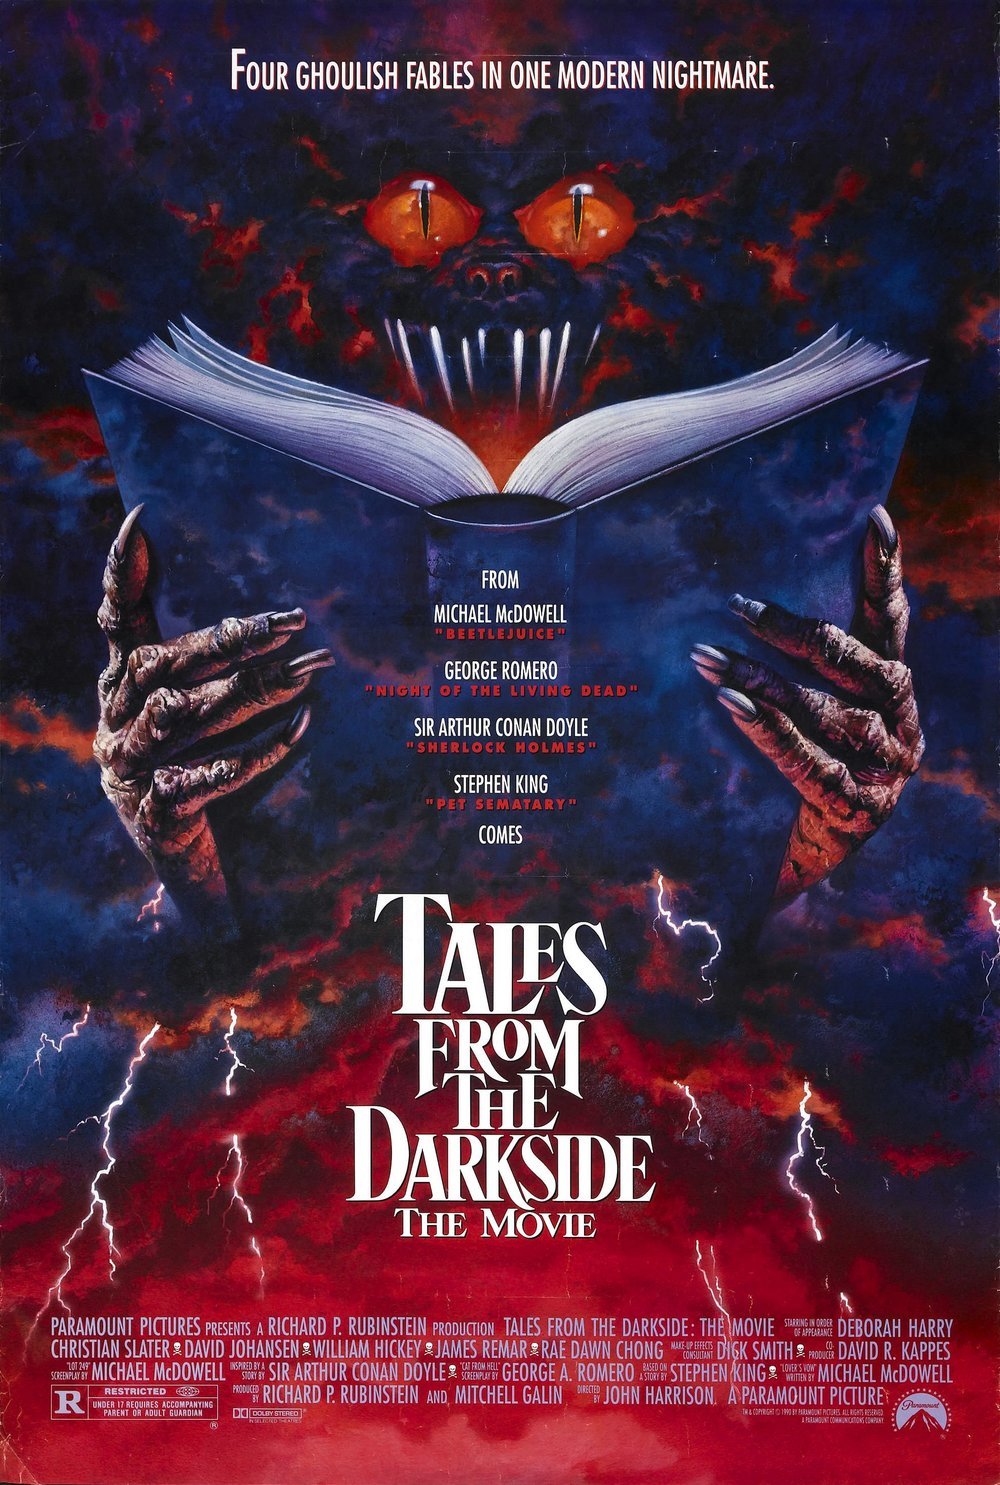 tales-from-the-darkside-movie-poster.jpg